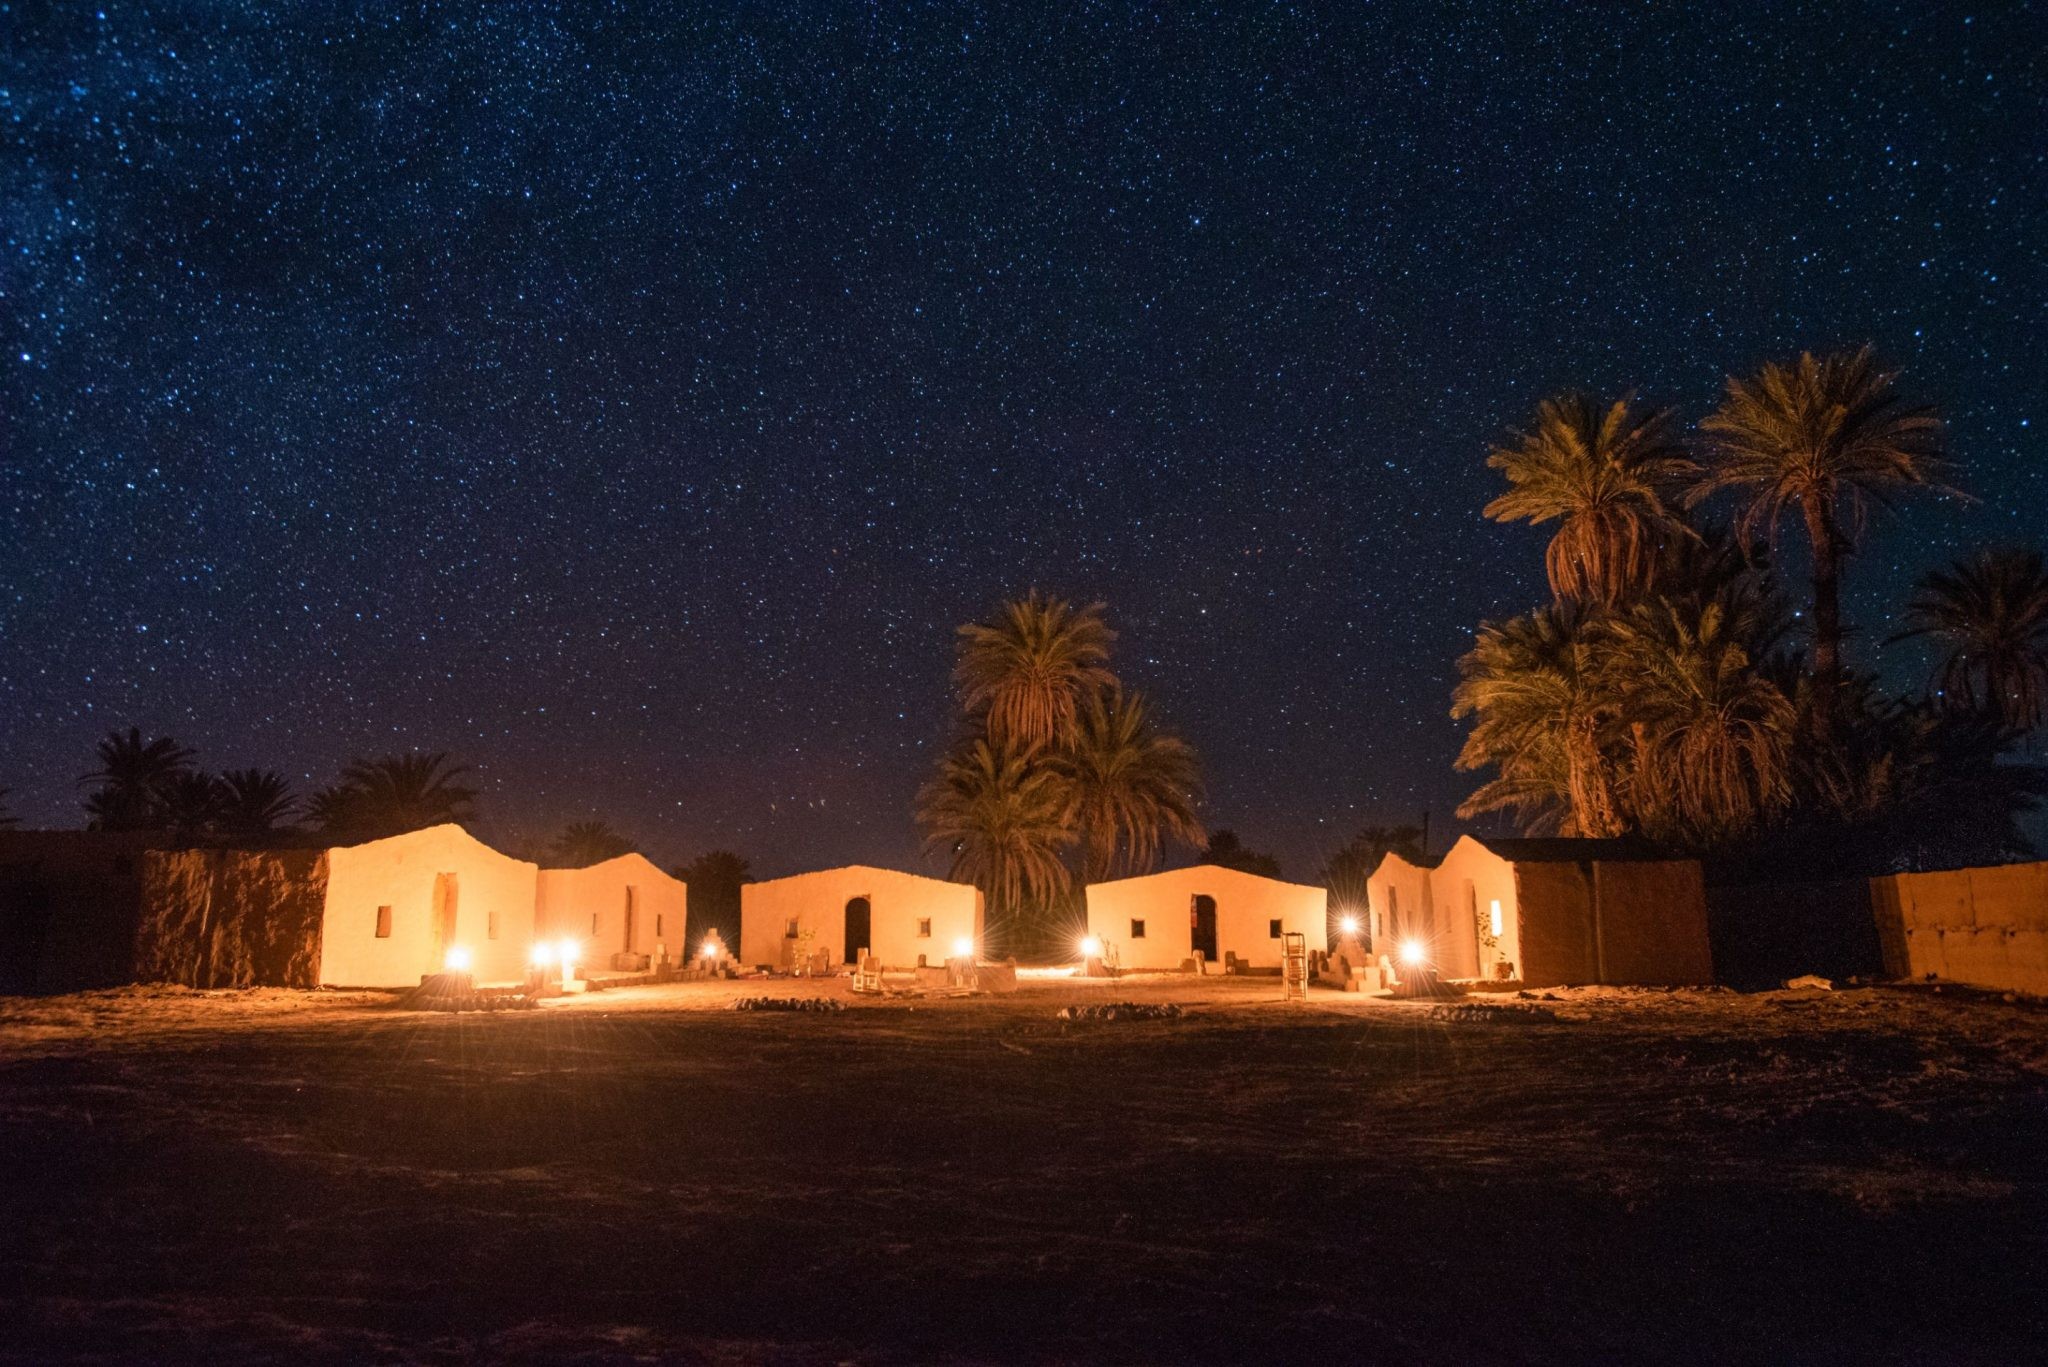 An image of a small village of houses in the Morocco Sahara Desert.